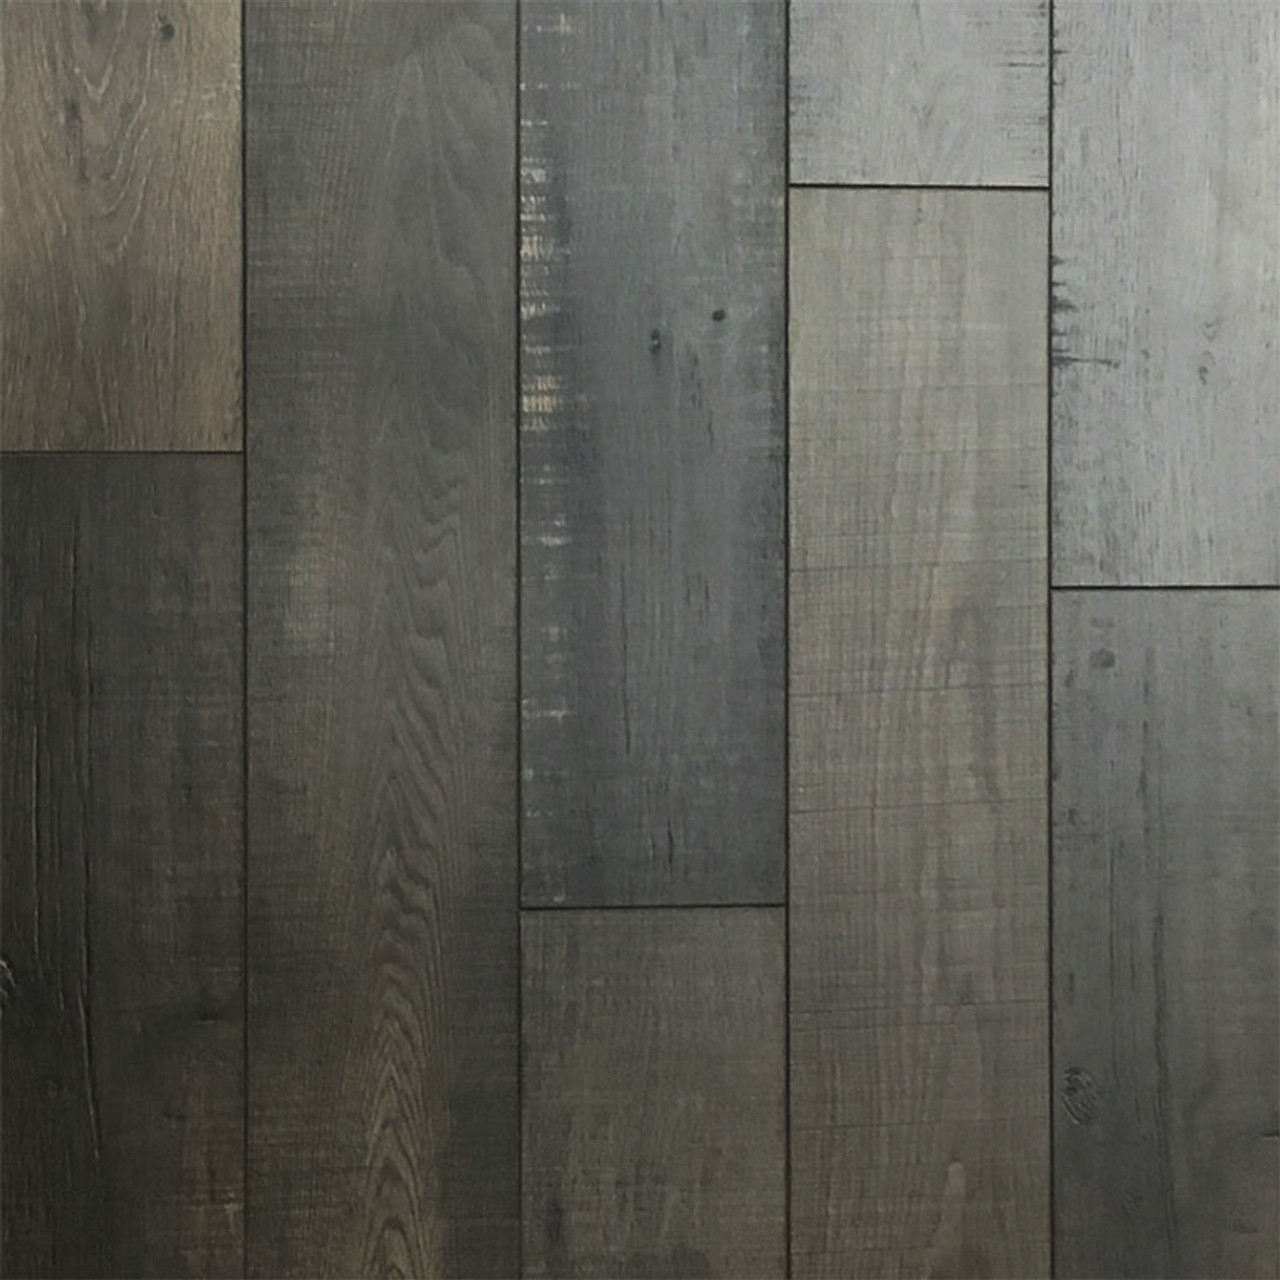 12MM Nickel Pine Laminate Flooring | Attached Underpad | 11.63 Sq.Ft. Per Box | Sold by the Box